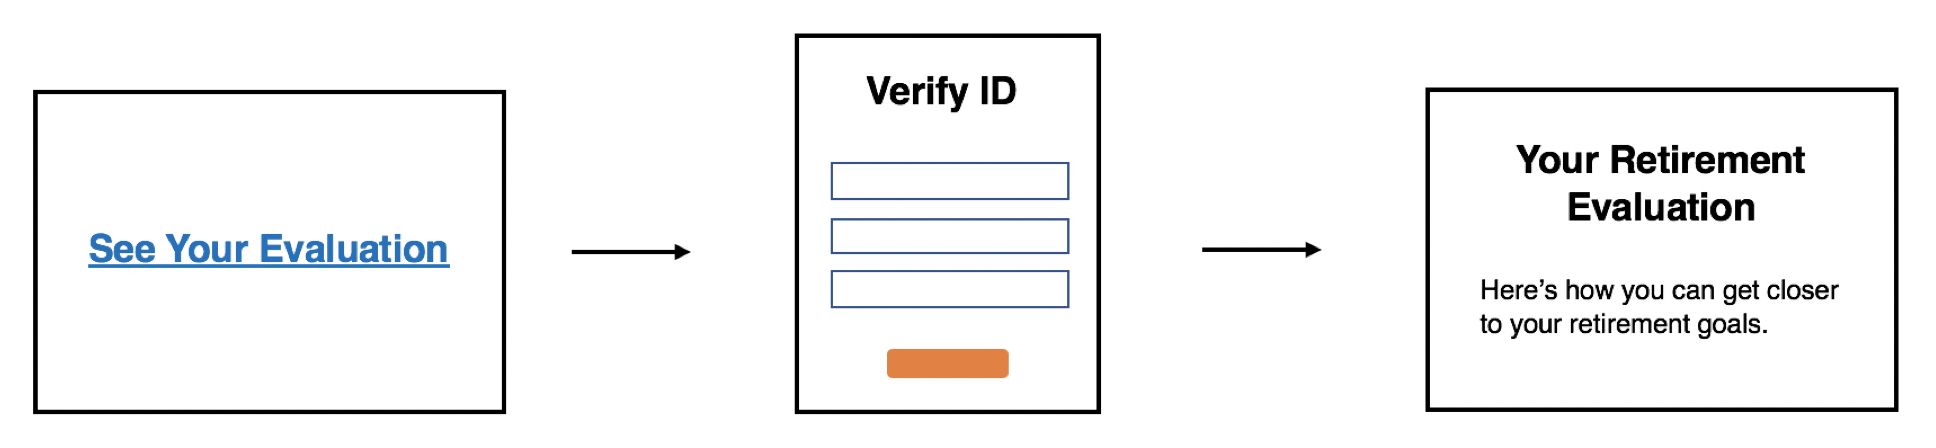 Verify_ID_Flow.png